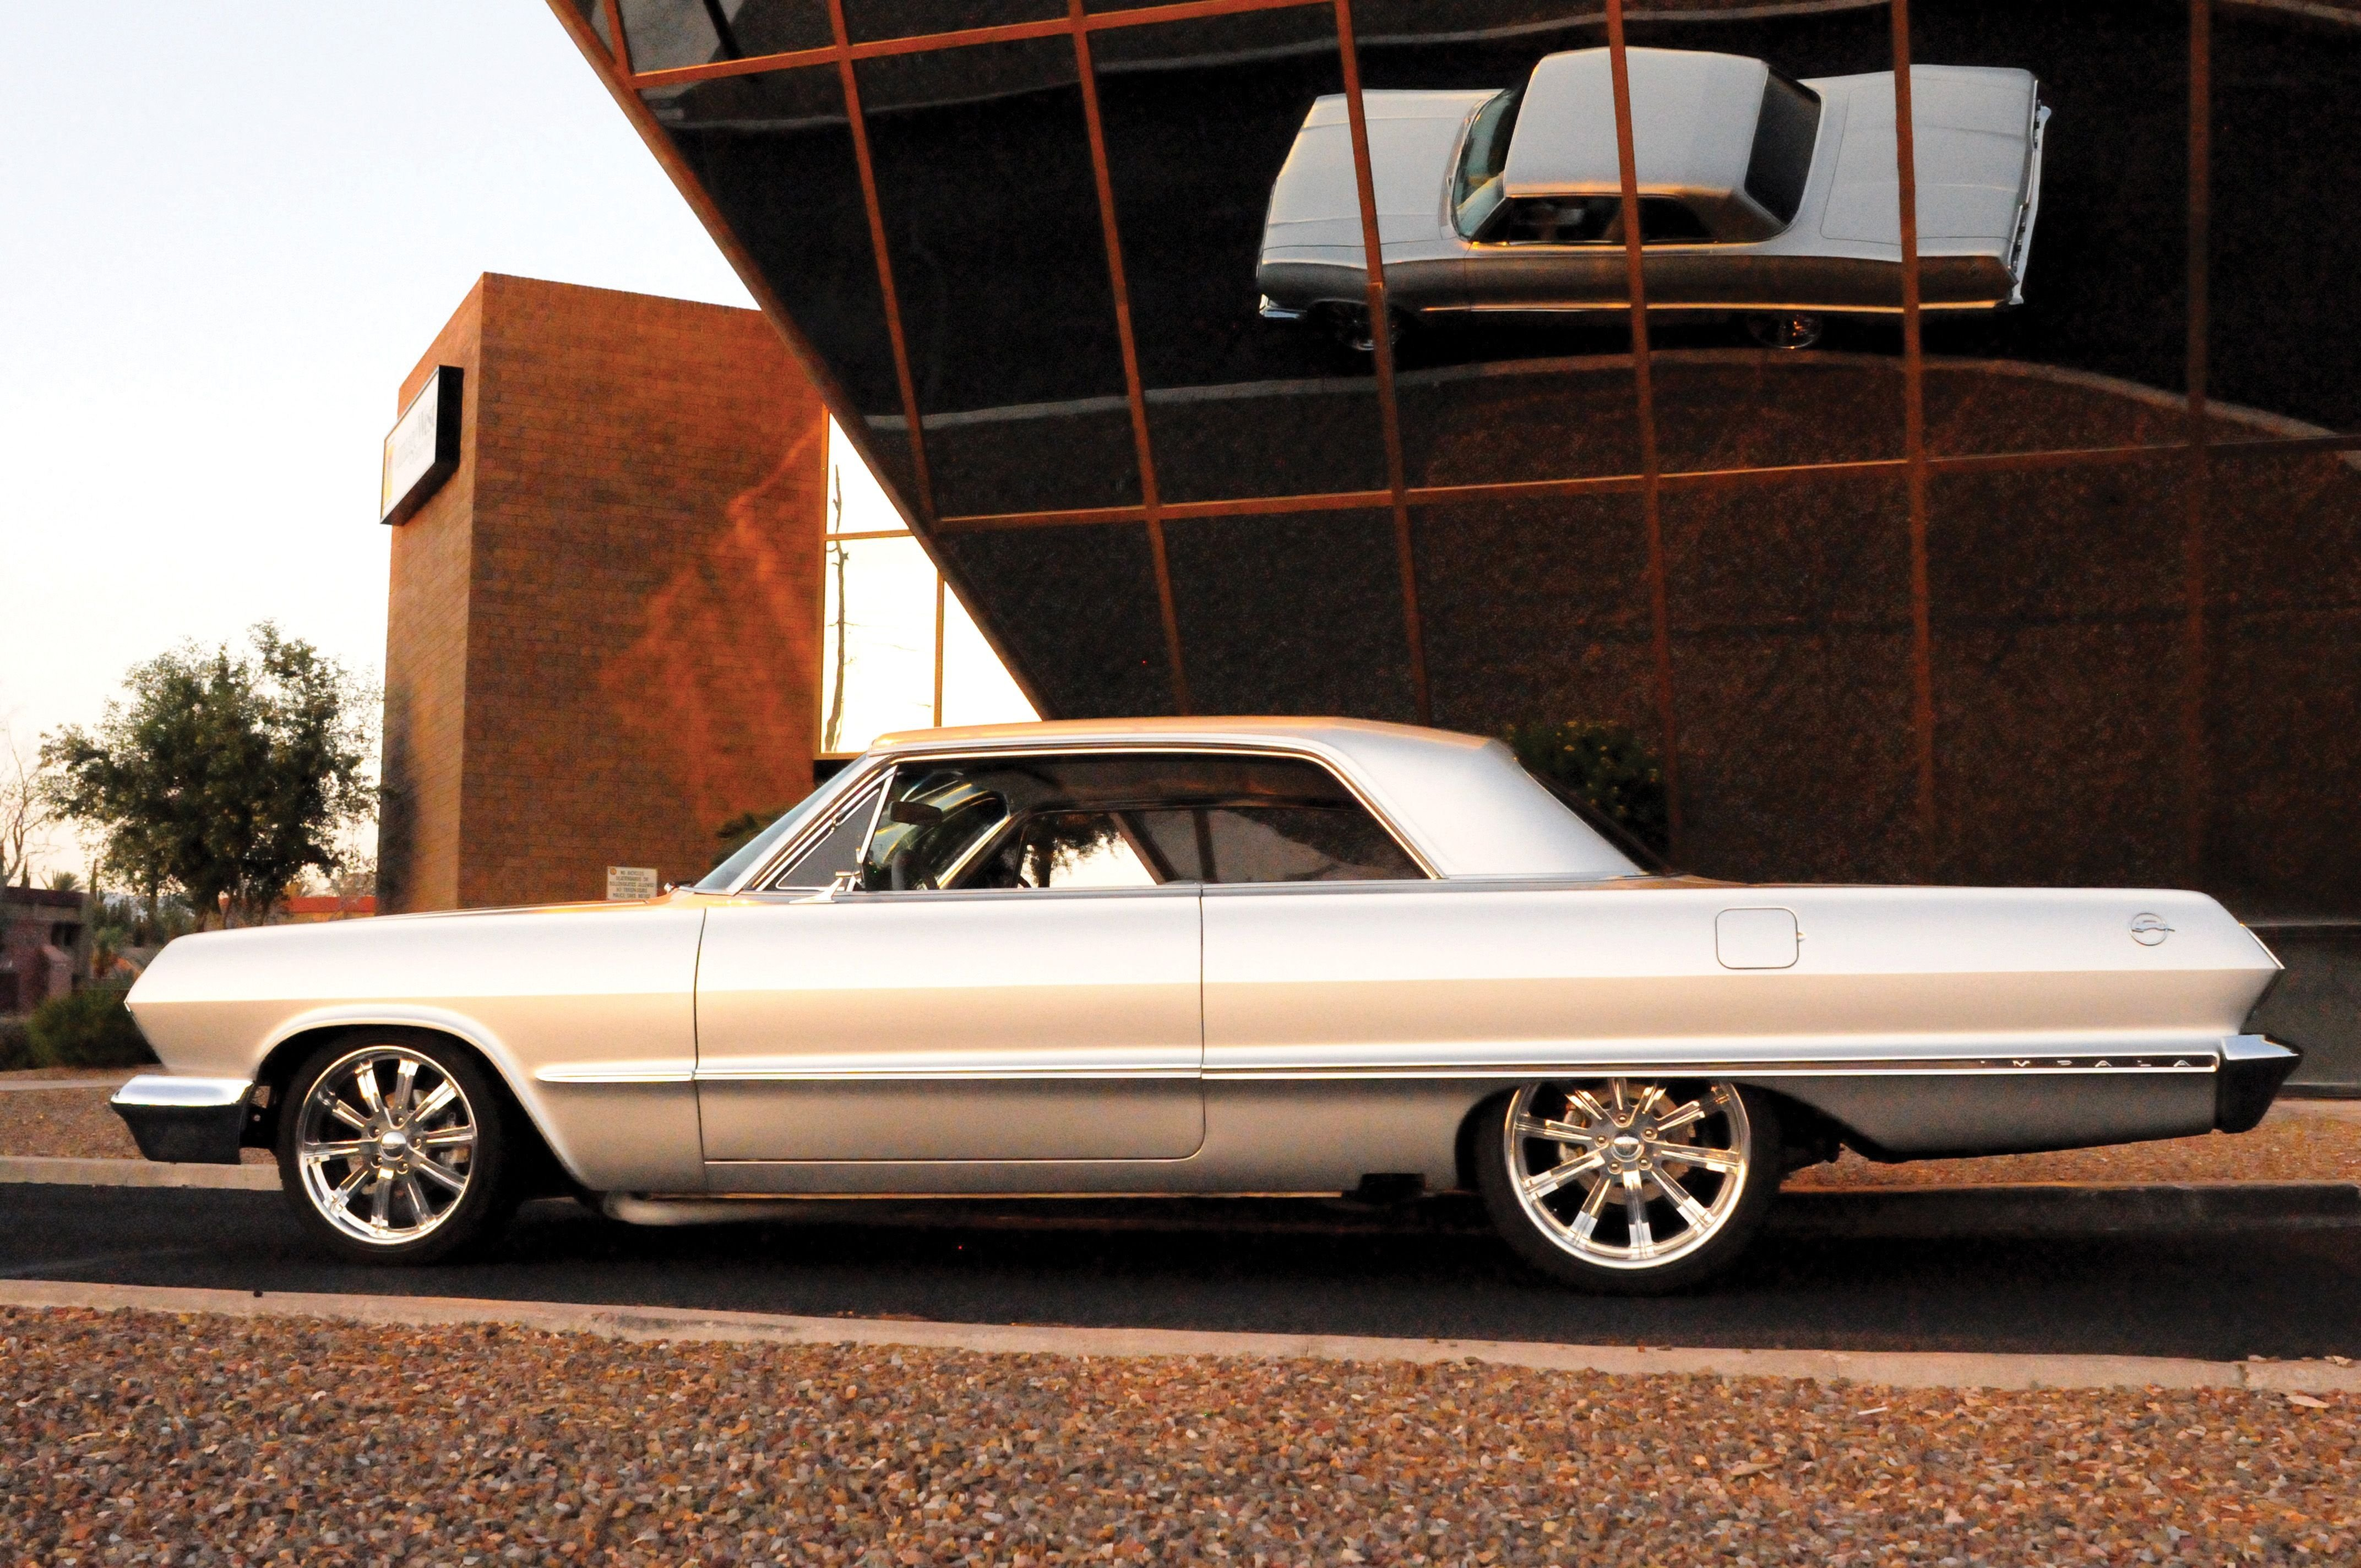 Chevy Impala Lowrider Wallpaper. Gallery Of Chevy Impala Lowrider ...